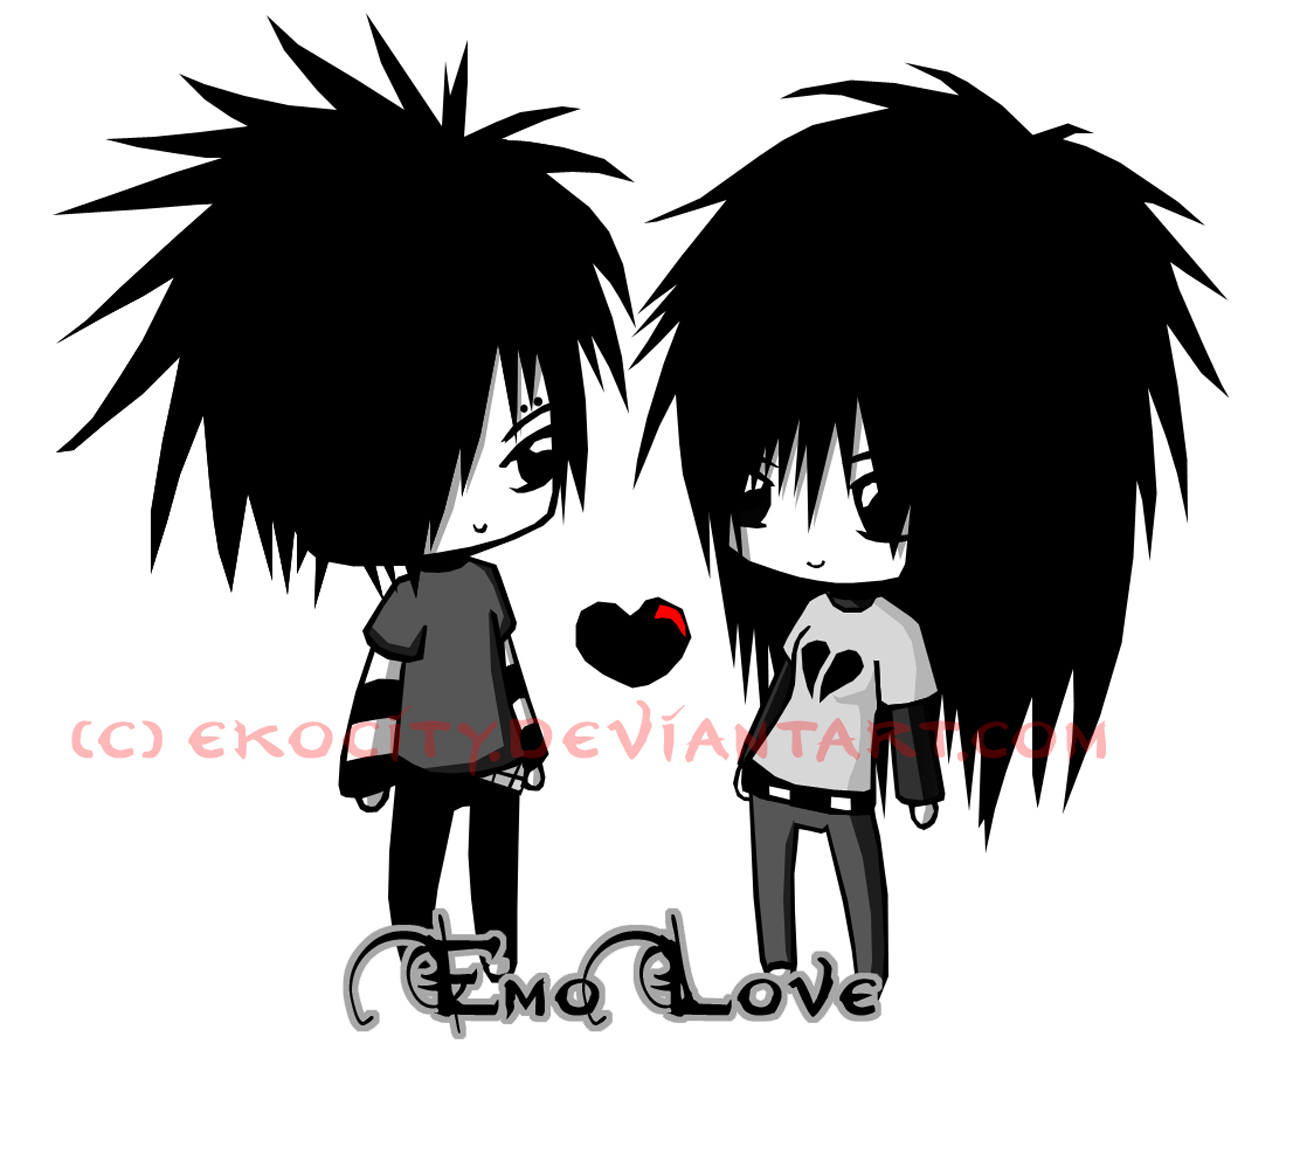 sad emo wallpapers sad emo wallpapers sad emo wallpapers sad emo 1300x1175